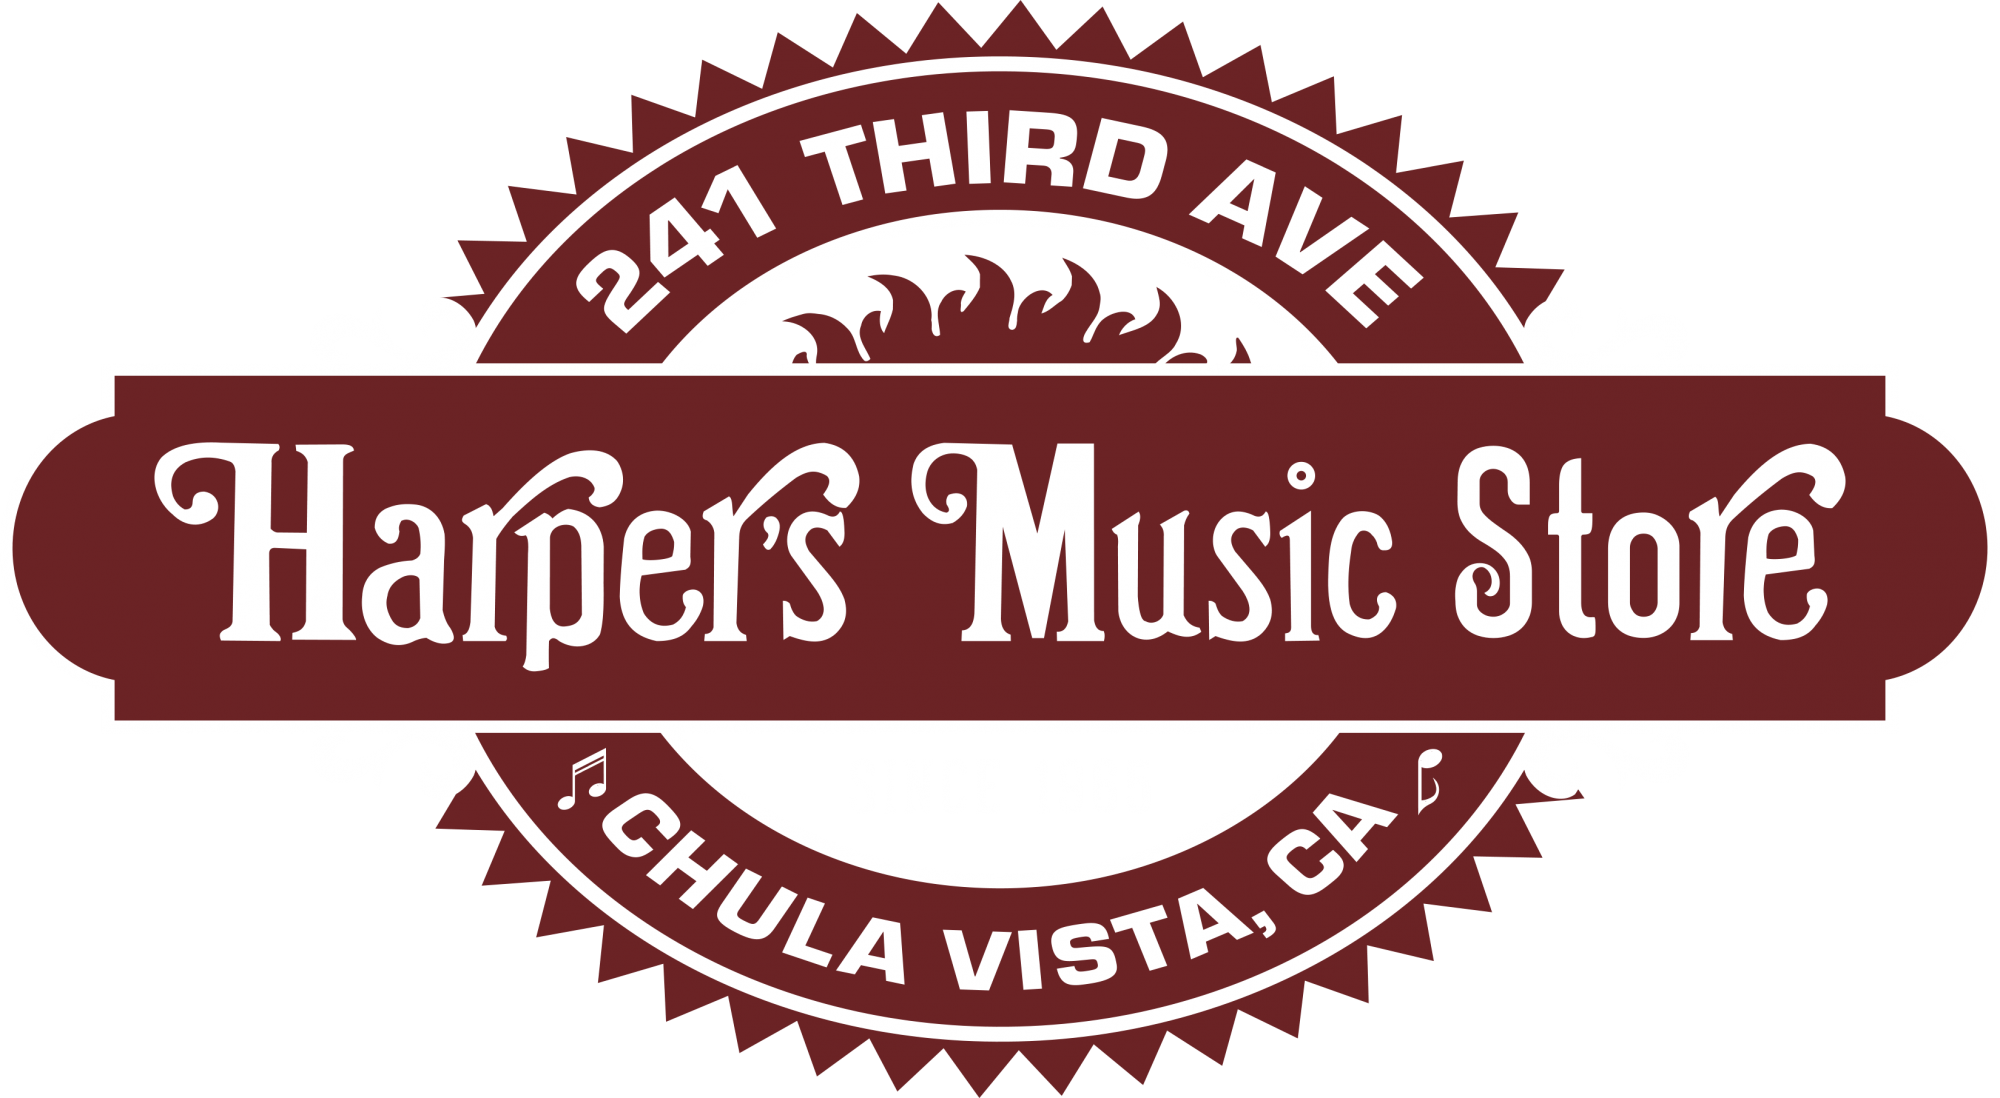 harper 39 s music store location in chula vista near san diego ca visit us for a wide variety of. Black Bedroom Furniture Sets. Home Design Ideas